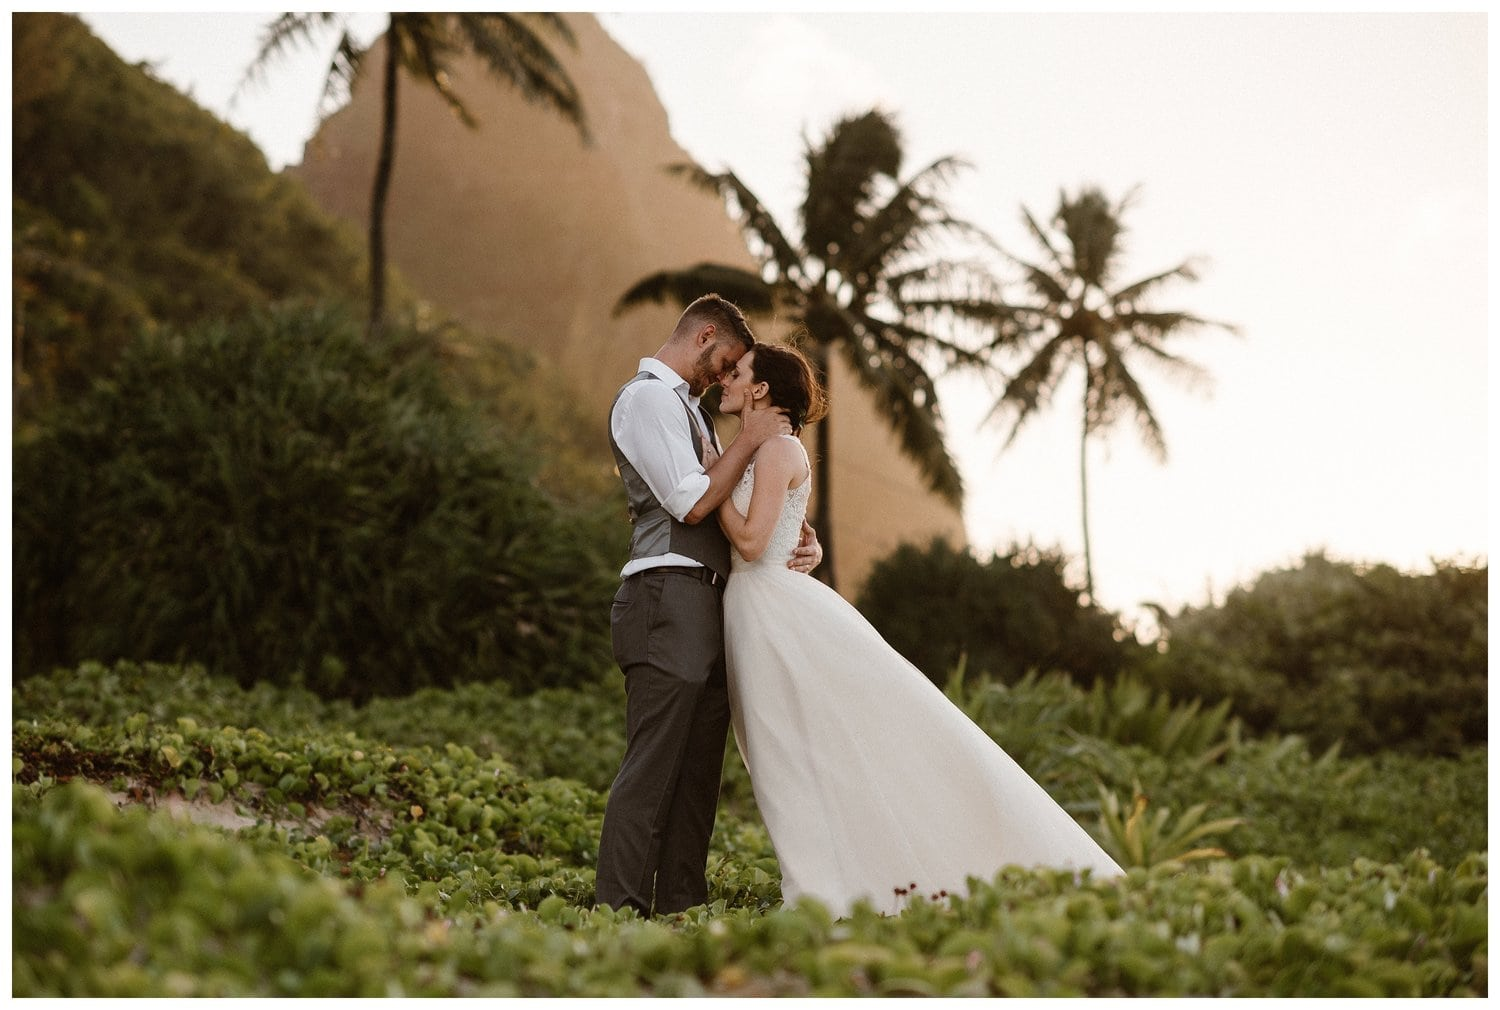 A bride and groom embrace in the middle of greenery with palm trees behind them.